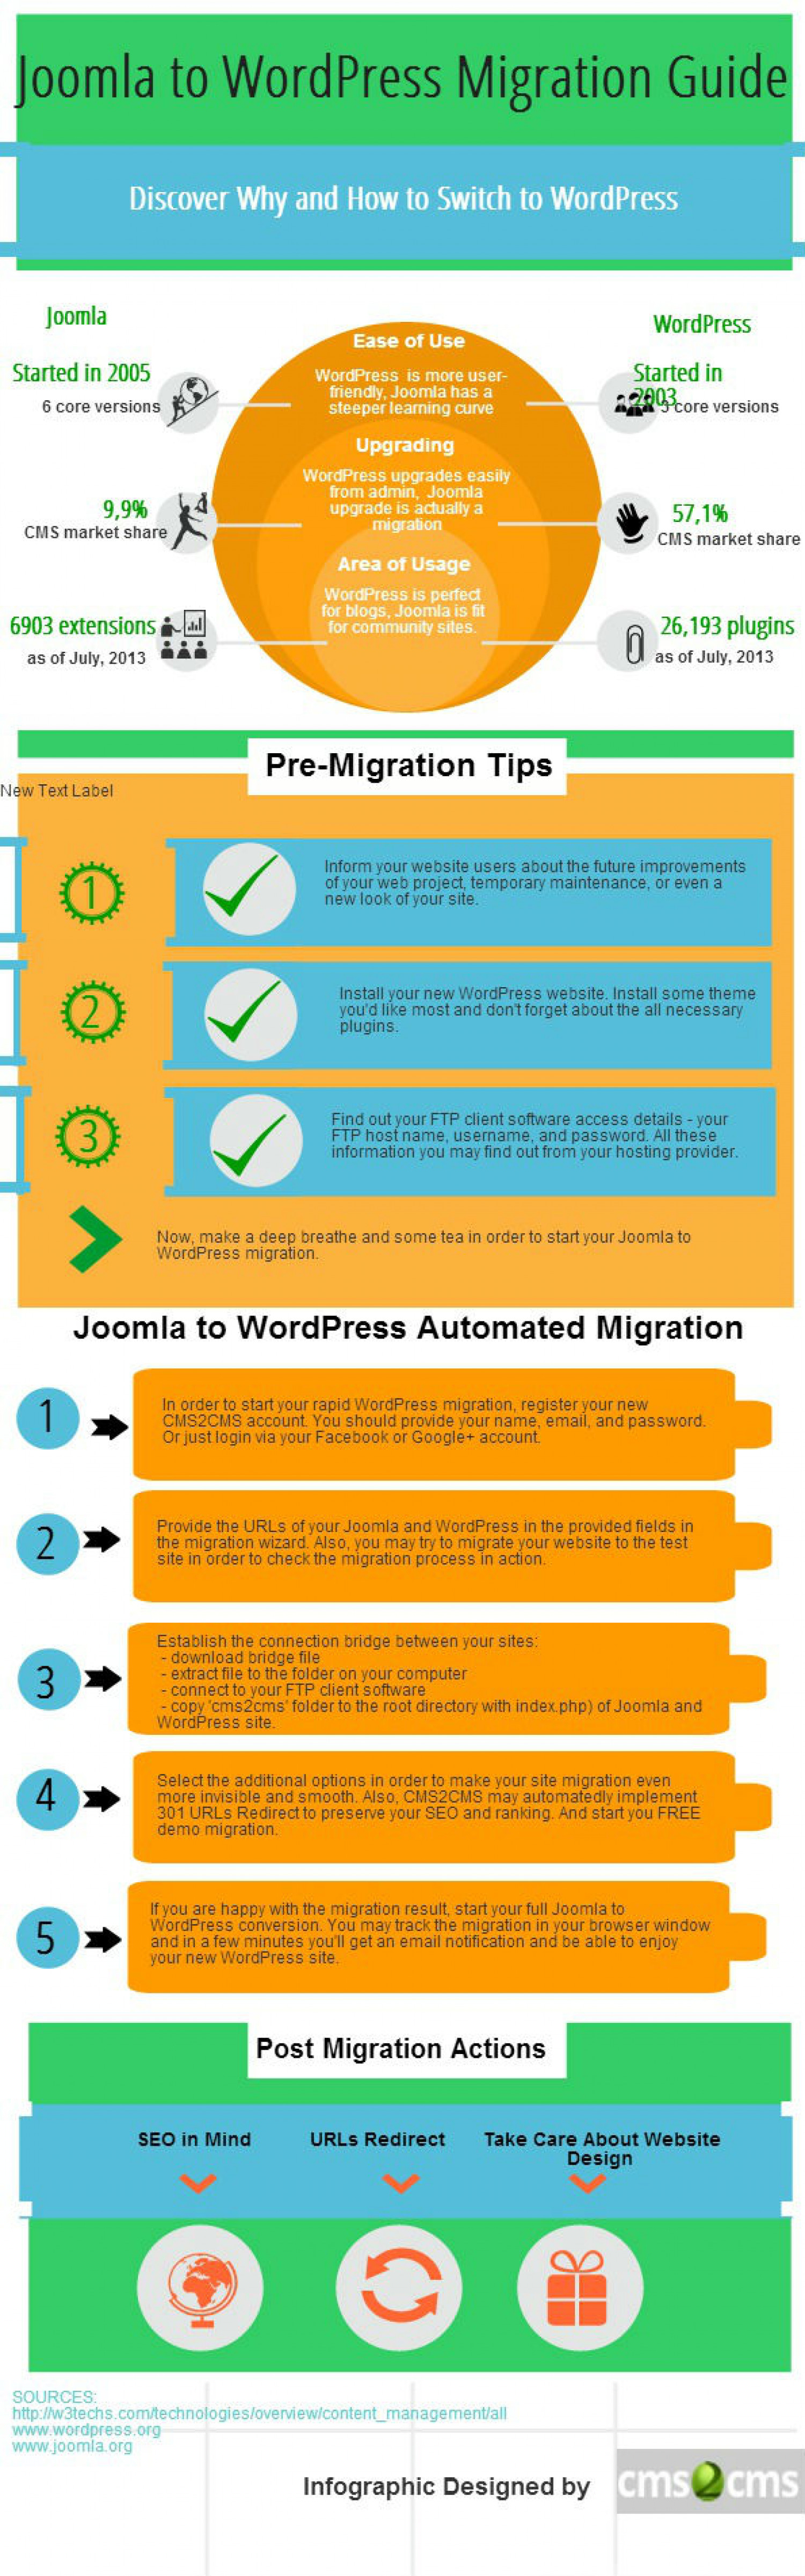 Joomla to WordPress Migration Rich in Details [Infographic] Infographic